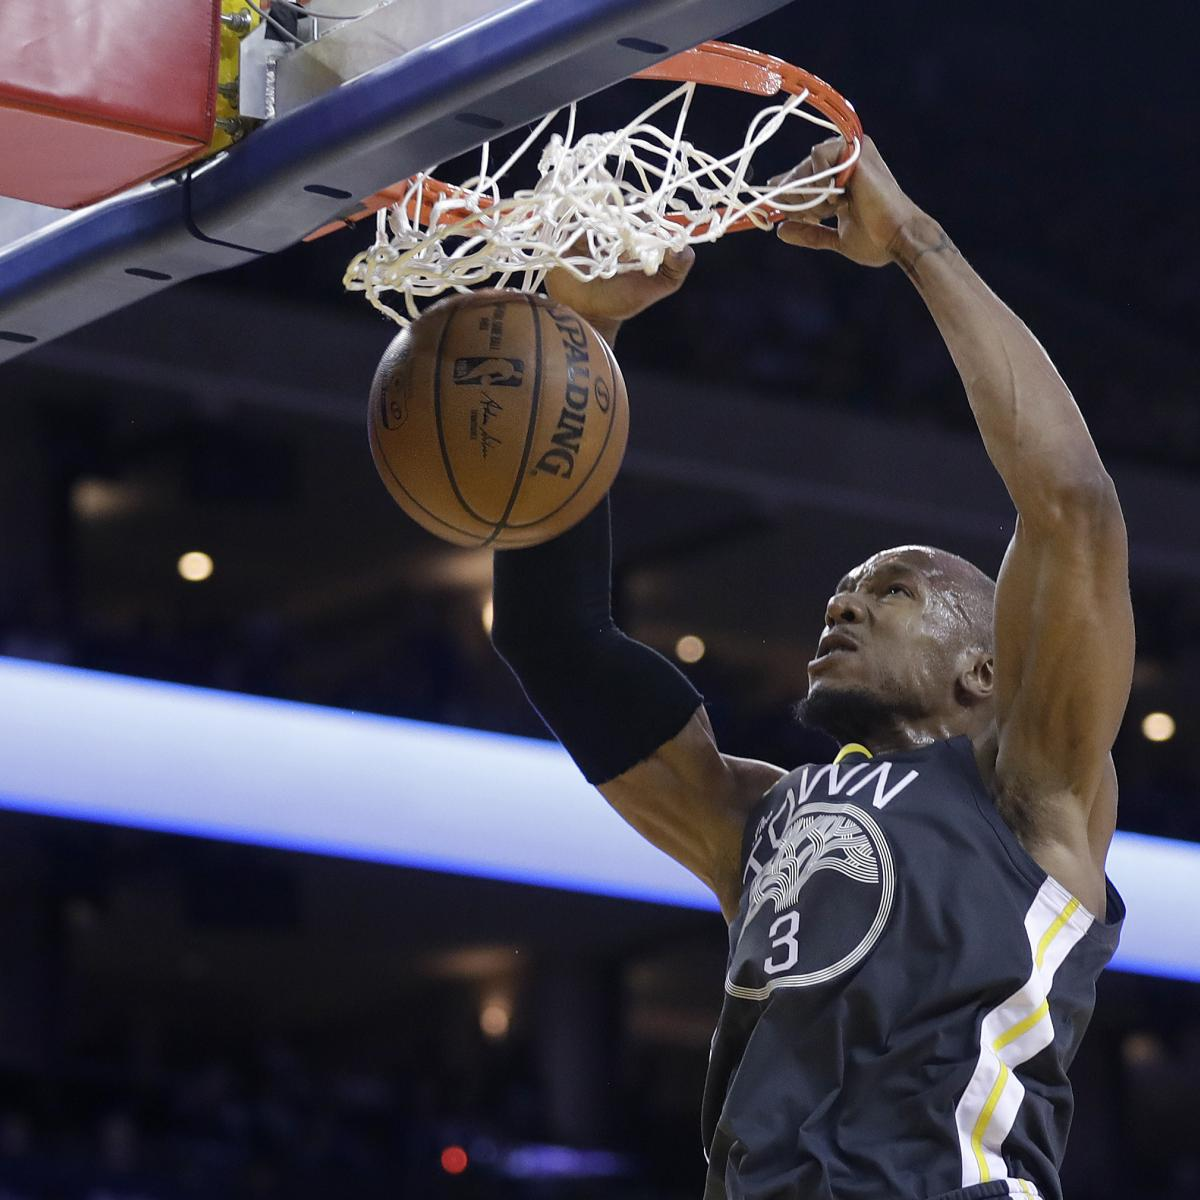 Warriors Vs Nets Full Game Highlights: David West Ruled Out Vs. Nets With Cyst Under Arm